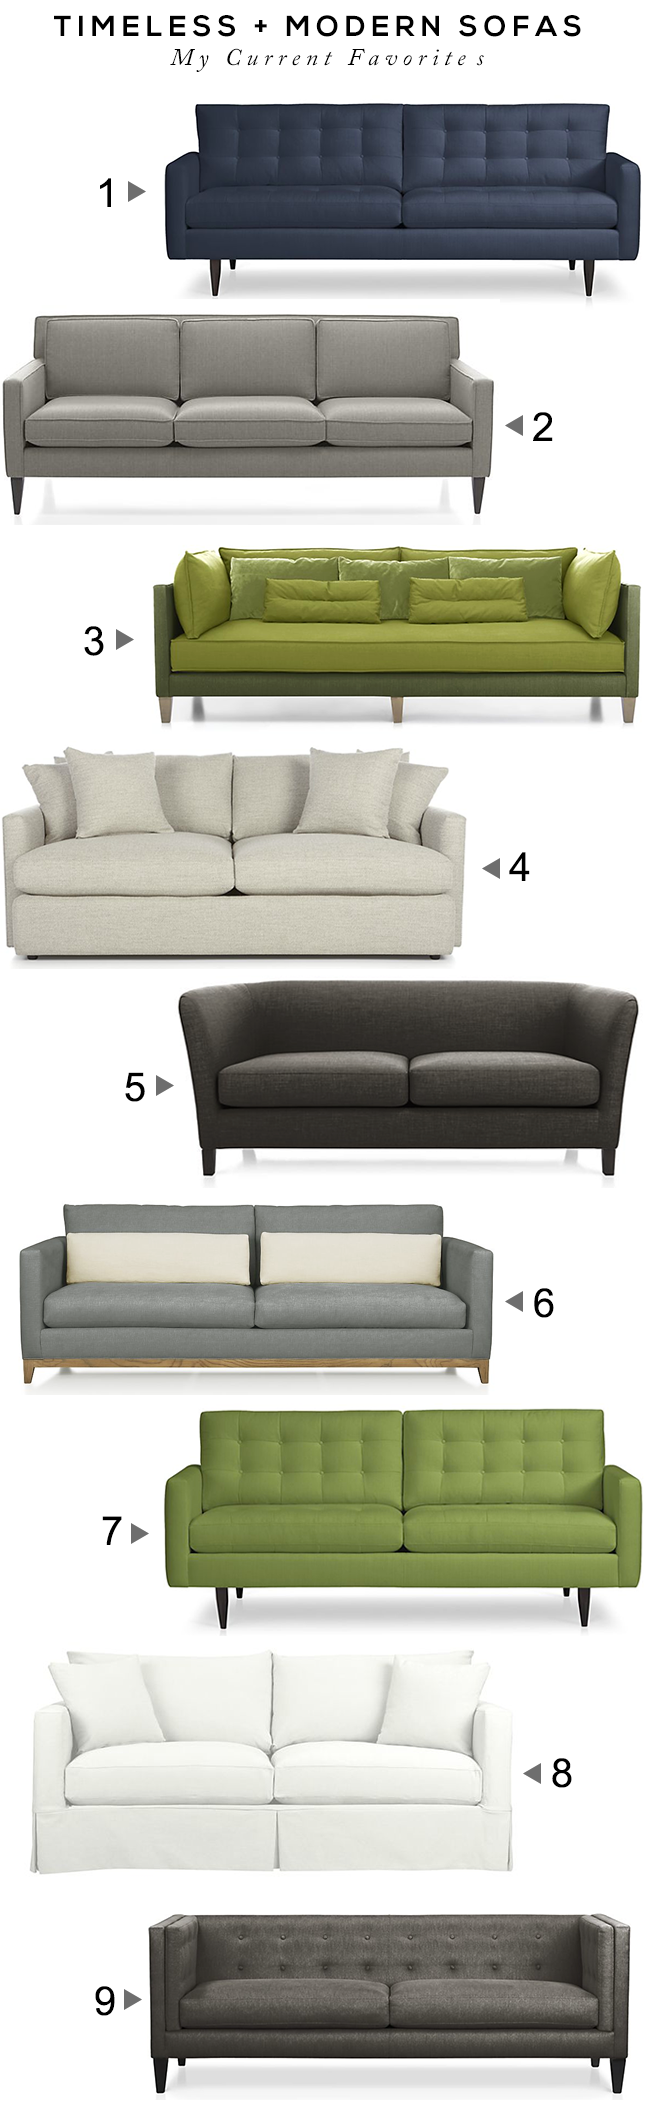 Modern + Timeless Sofas // Bubby and Bean